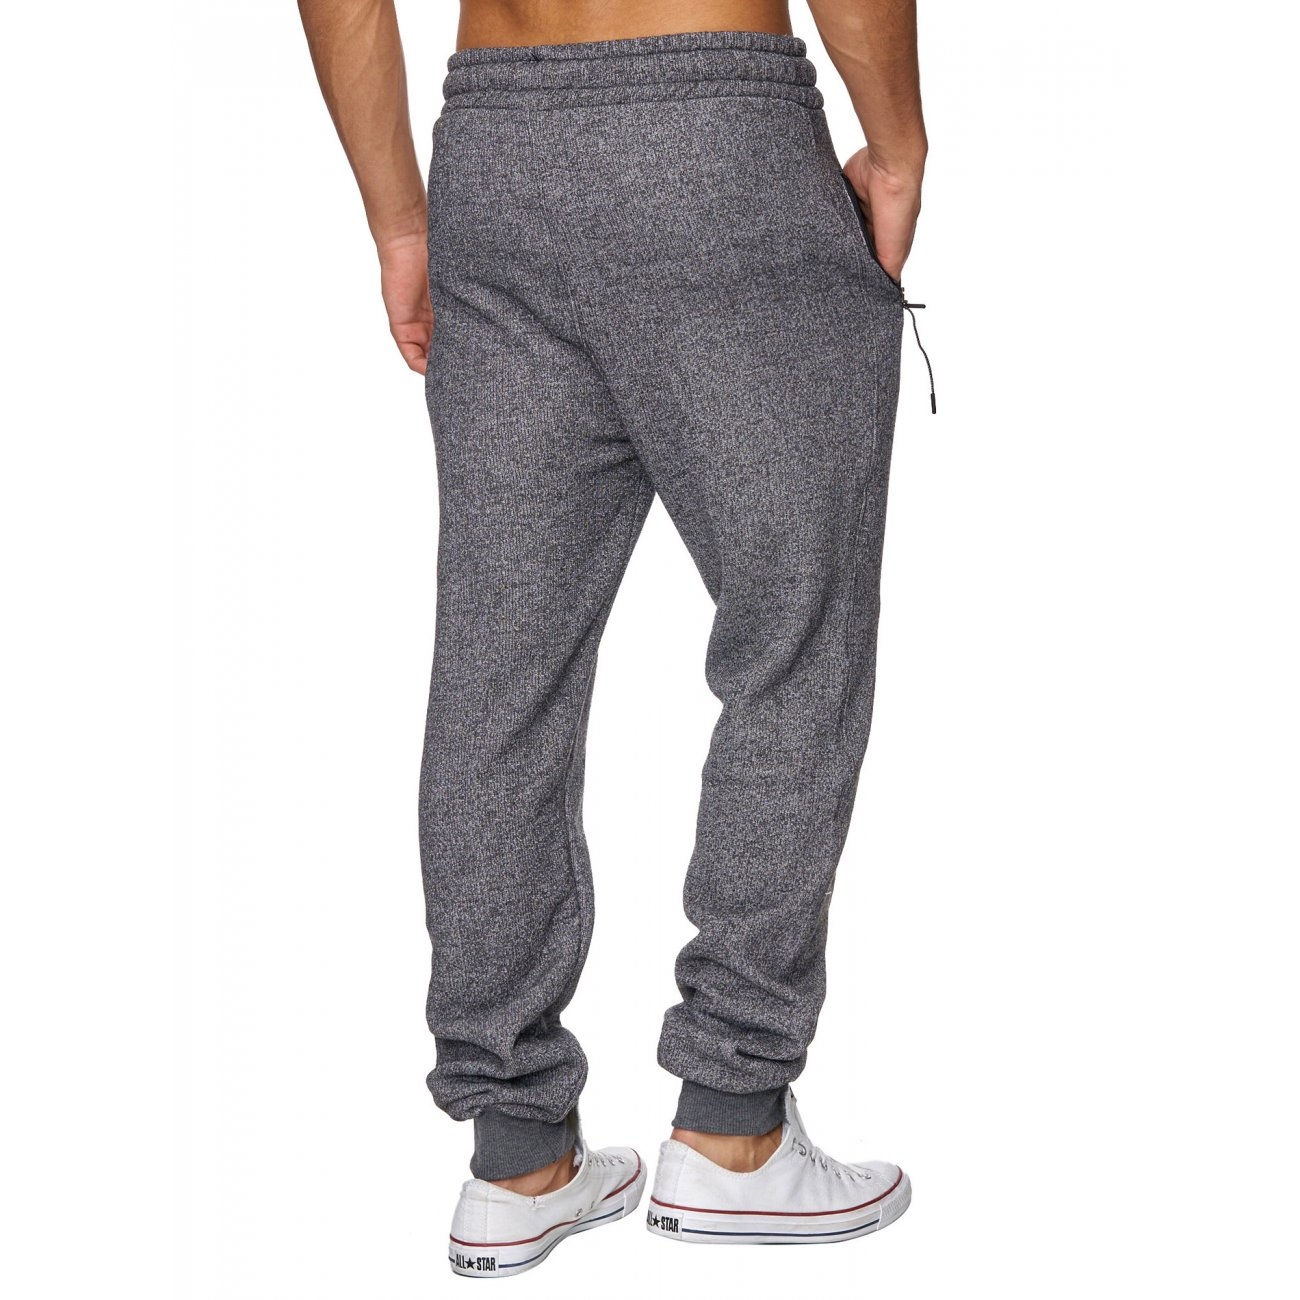 reslad jogging hose herren melange look sweatpants sport hose. Black Bedroom Furniture Sets. Home Design Ideas